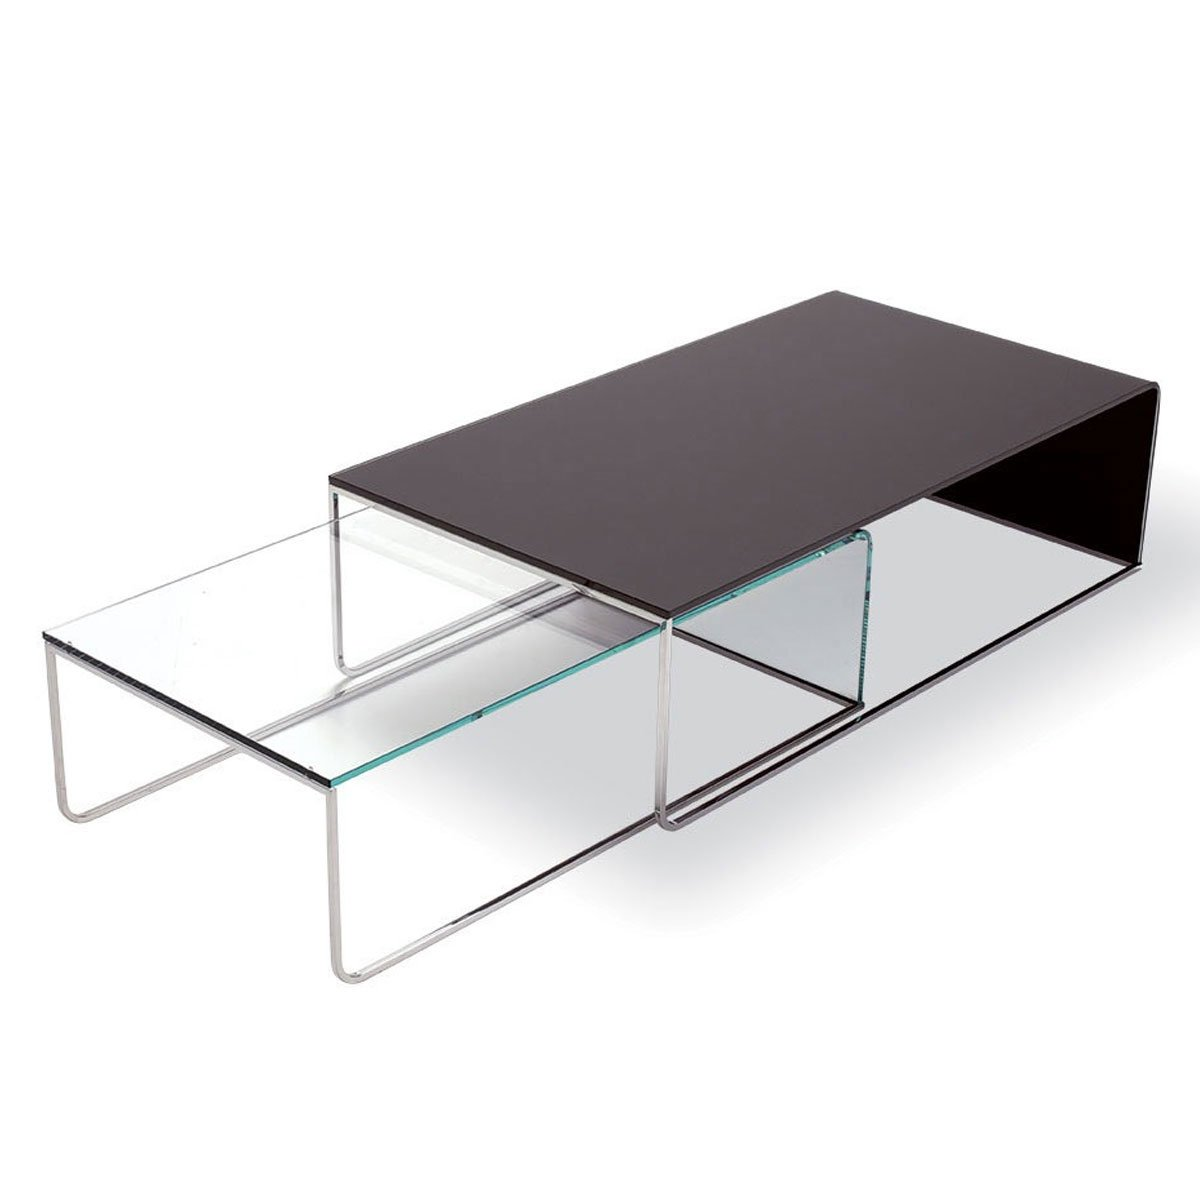 Nido glass and metal coffee table klarity glass furniture Metal and glass coffee table